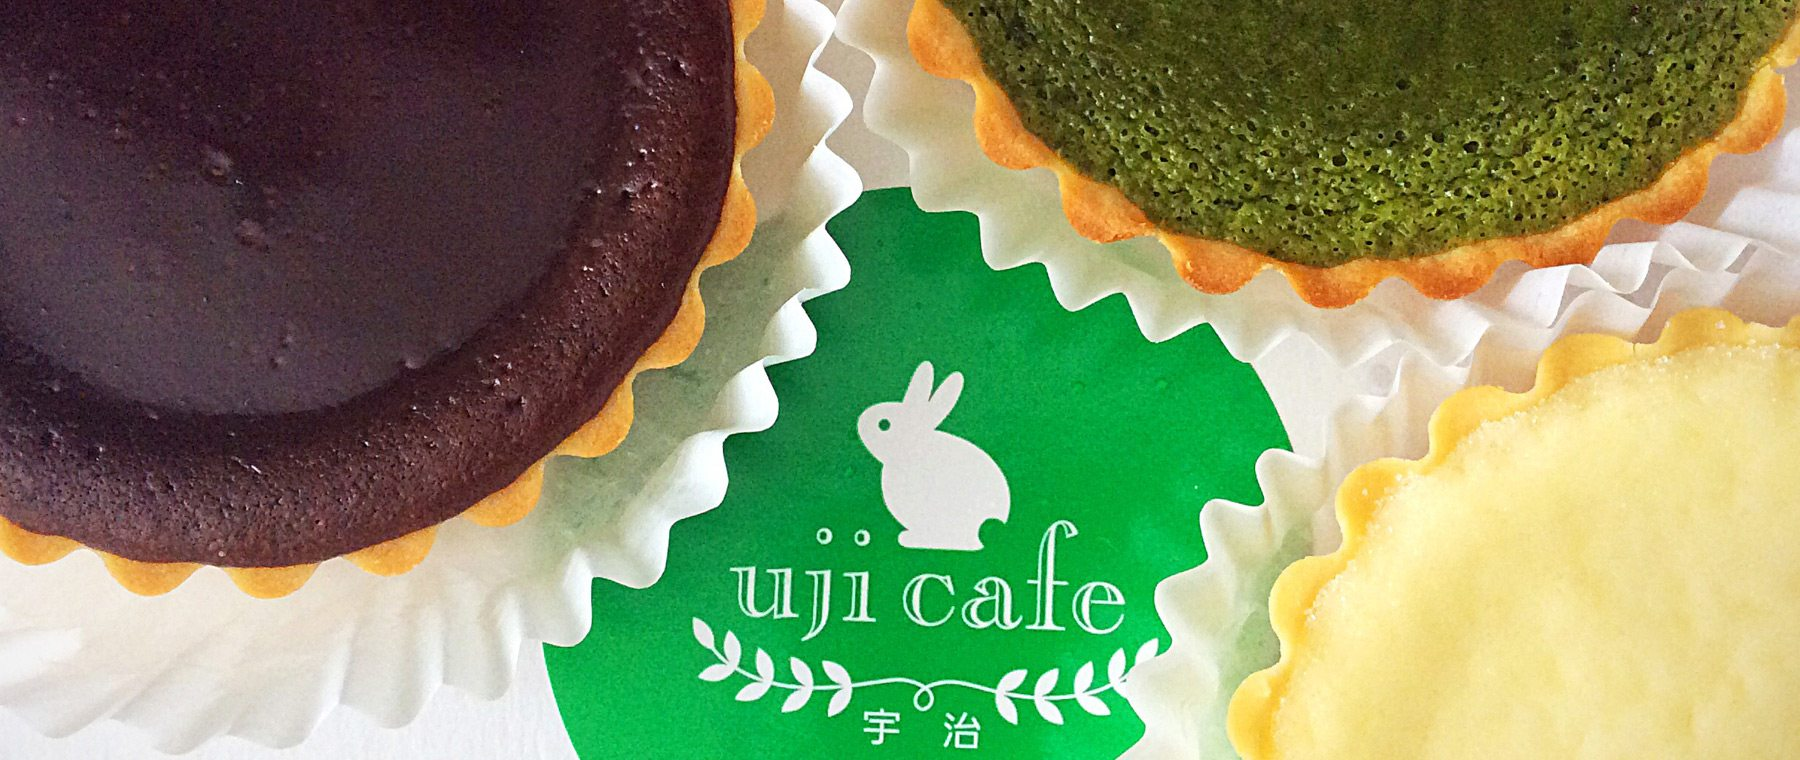 Matcha lattes, mille crepes, cheesecakes — Uji brings Japanese café culture to Rideau Street